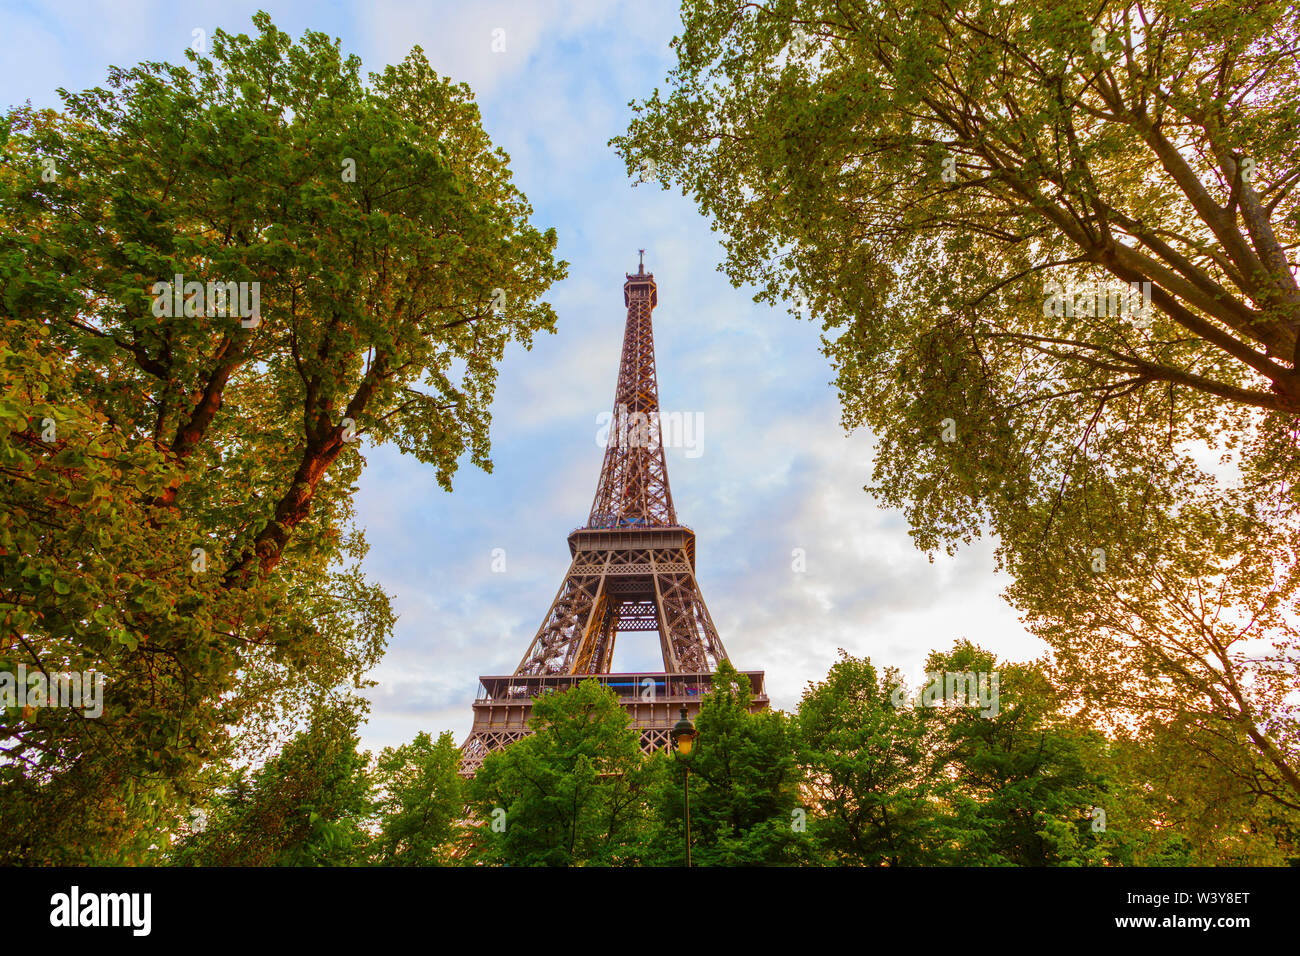 France, Paris, Eiffel Tower framed by trees - Stock Image